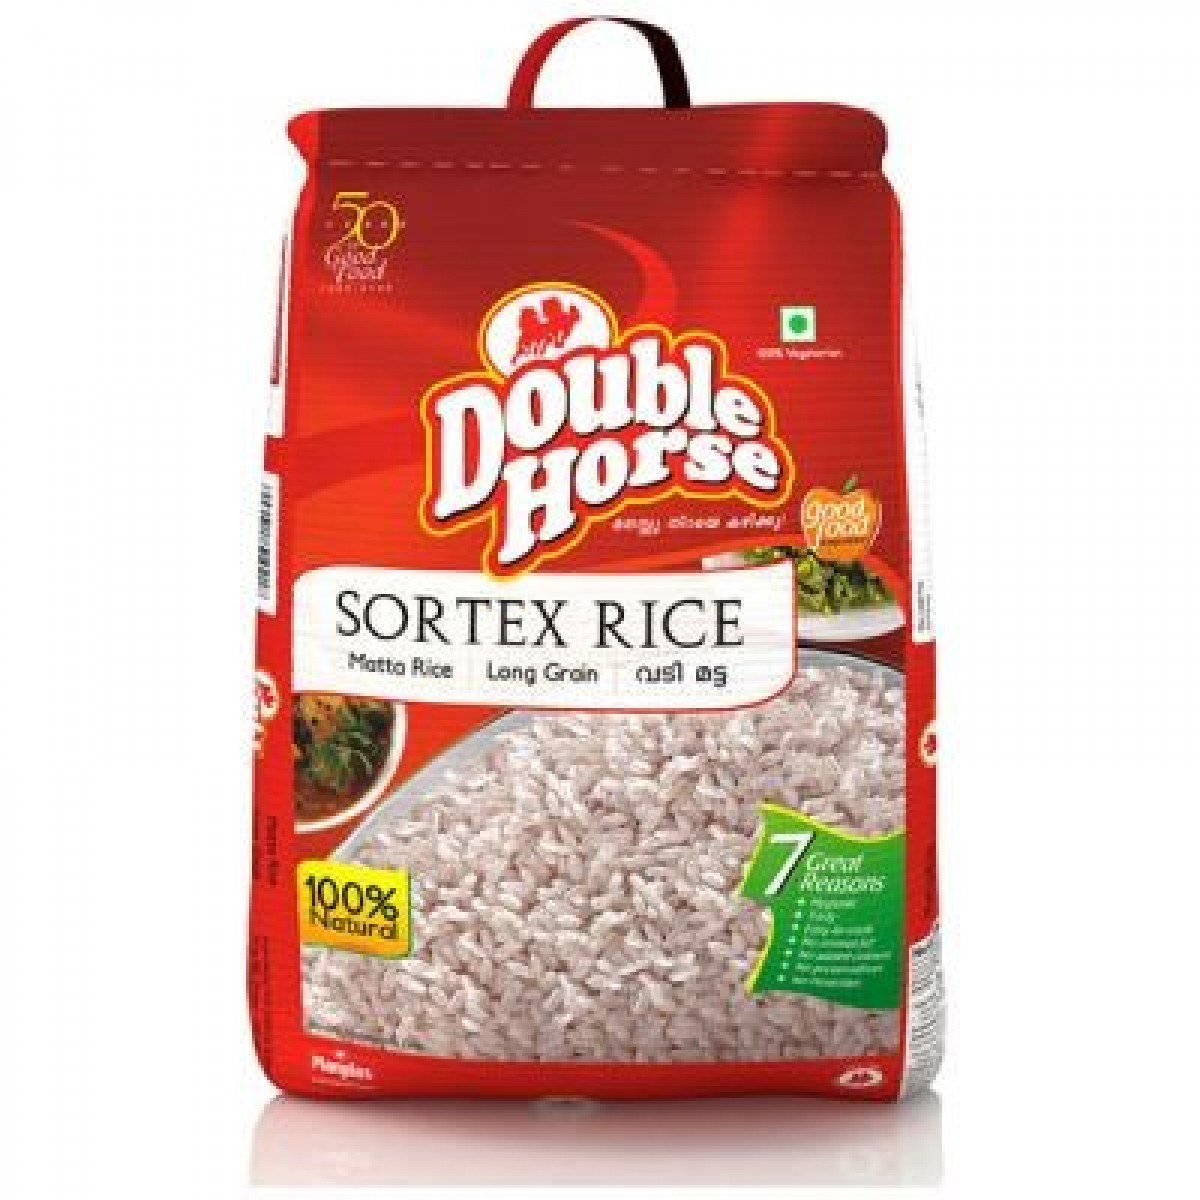 Double horse Rice Sortex